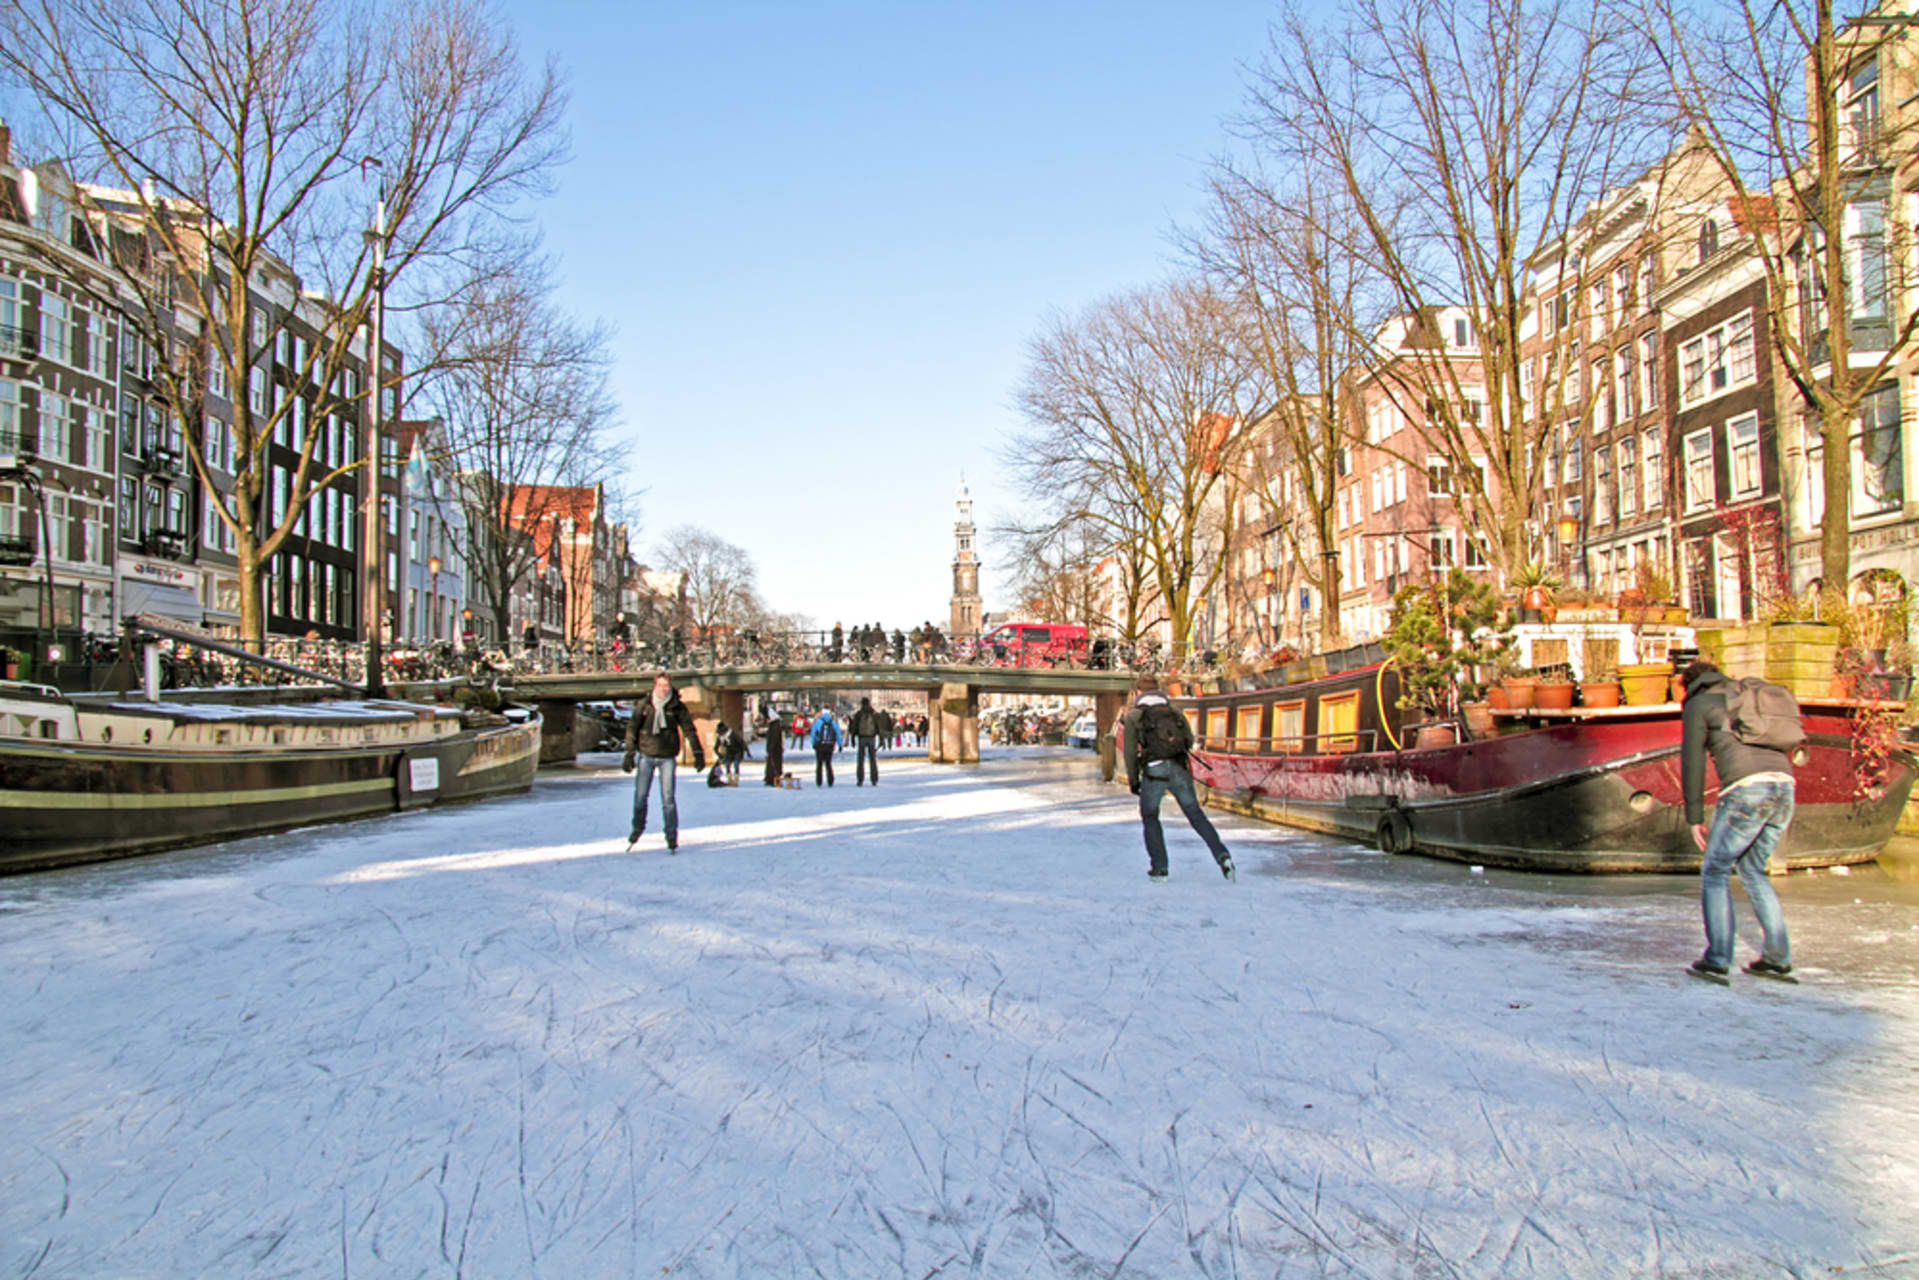 Amsterdam - Iceskating on the canals of Amsterdam